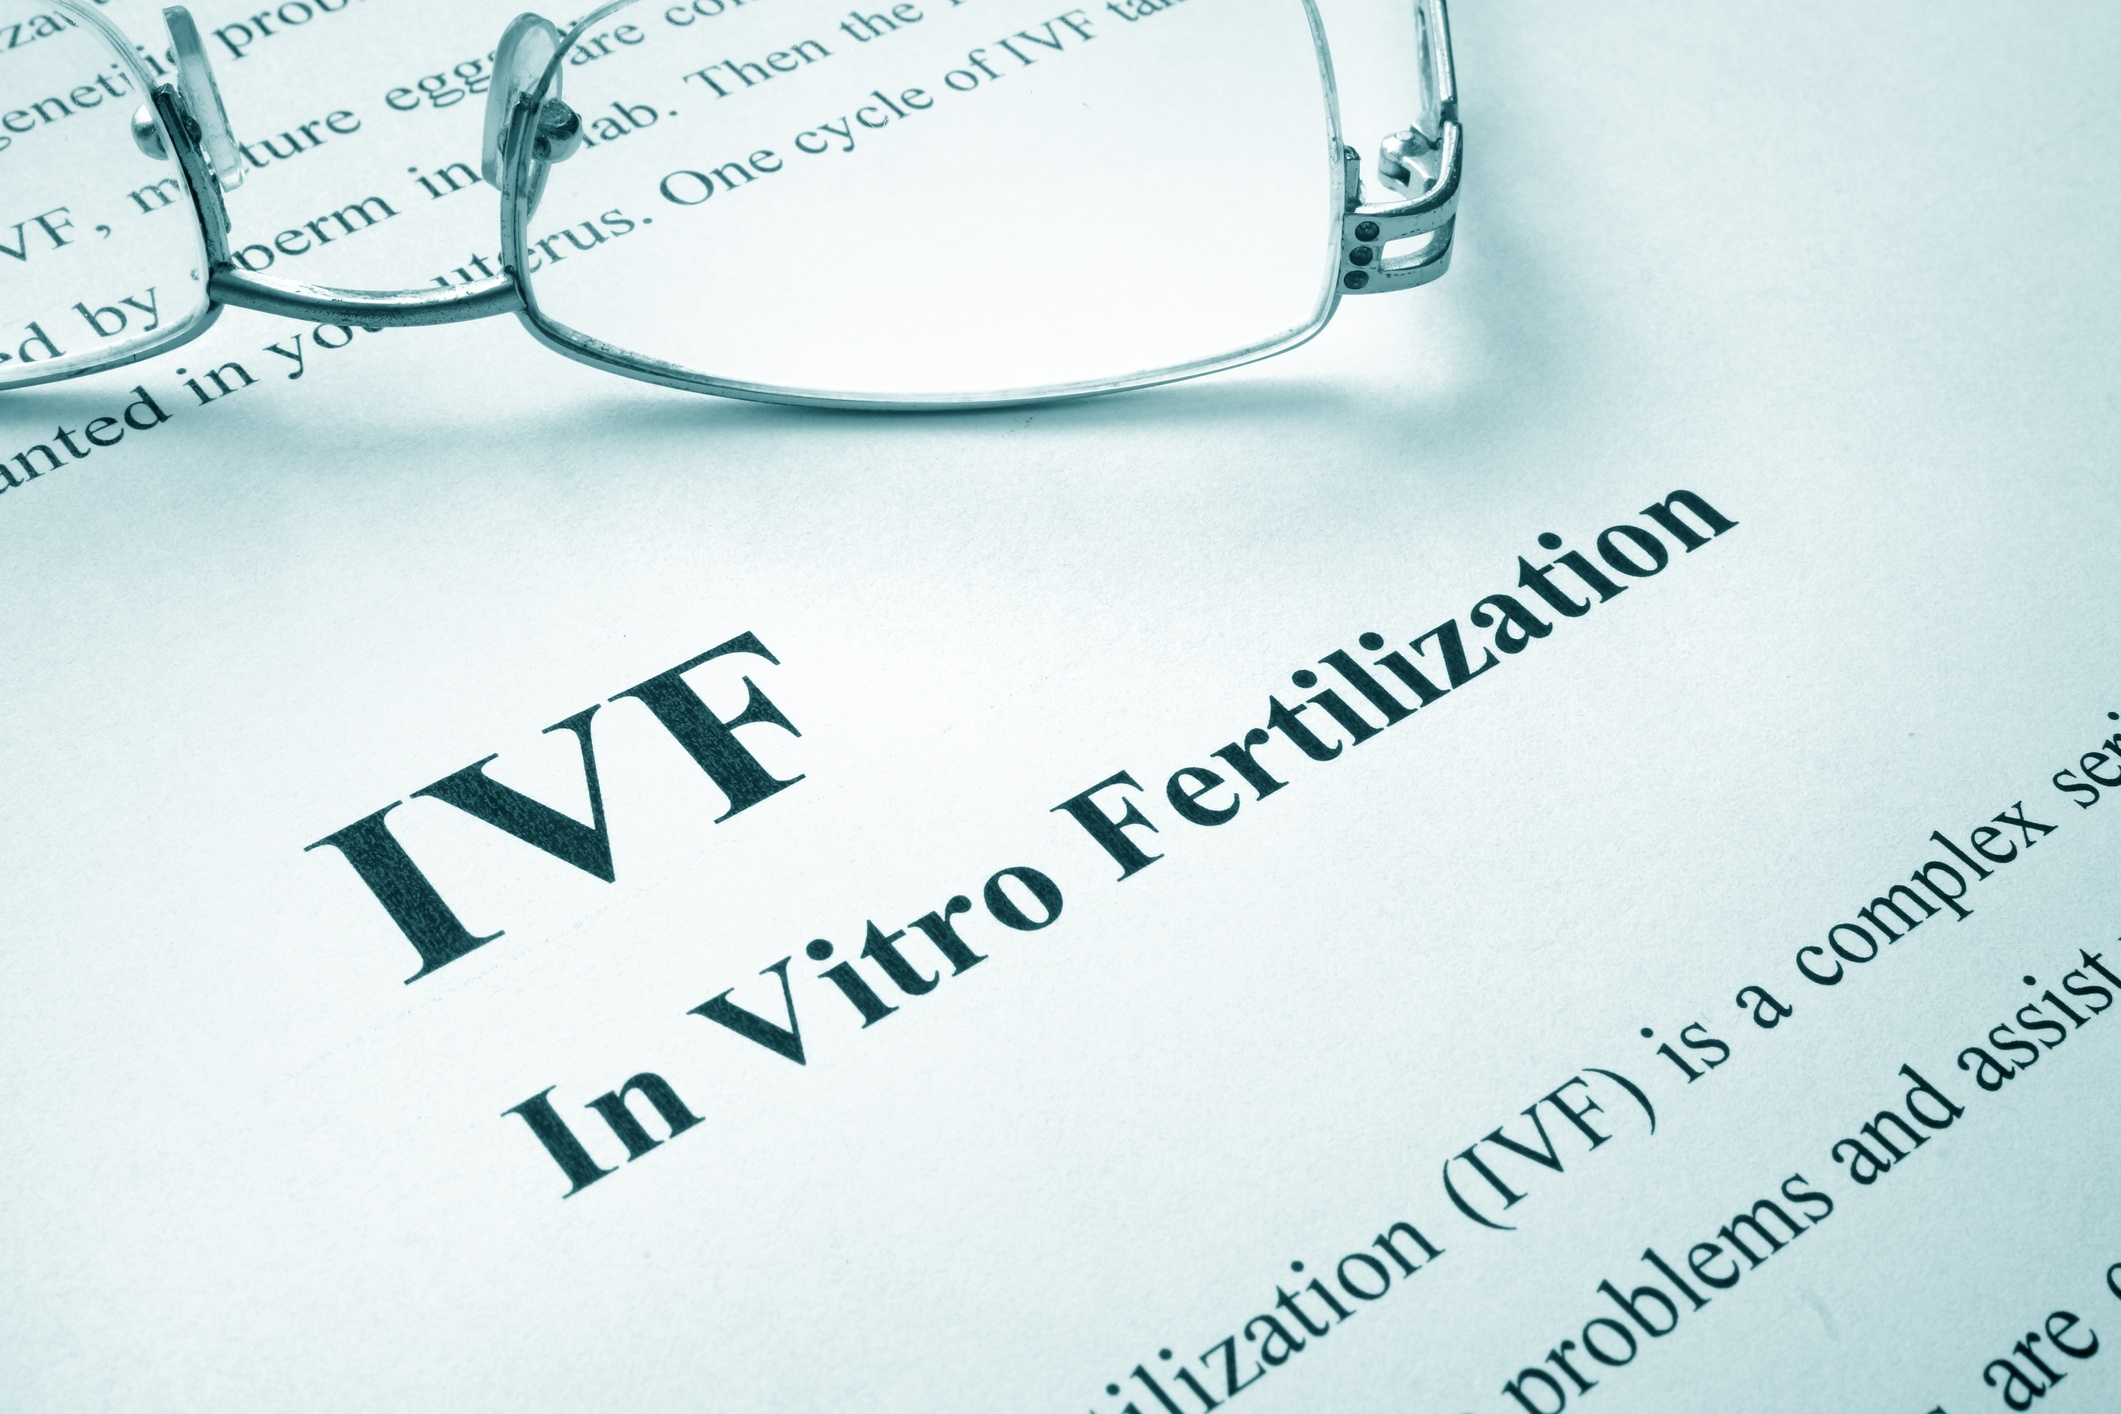 Stimulation of ovulation by folk remedies is an effective way to combat infertility